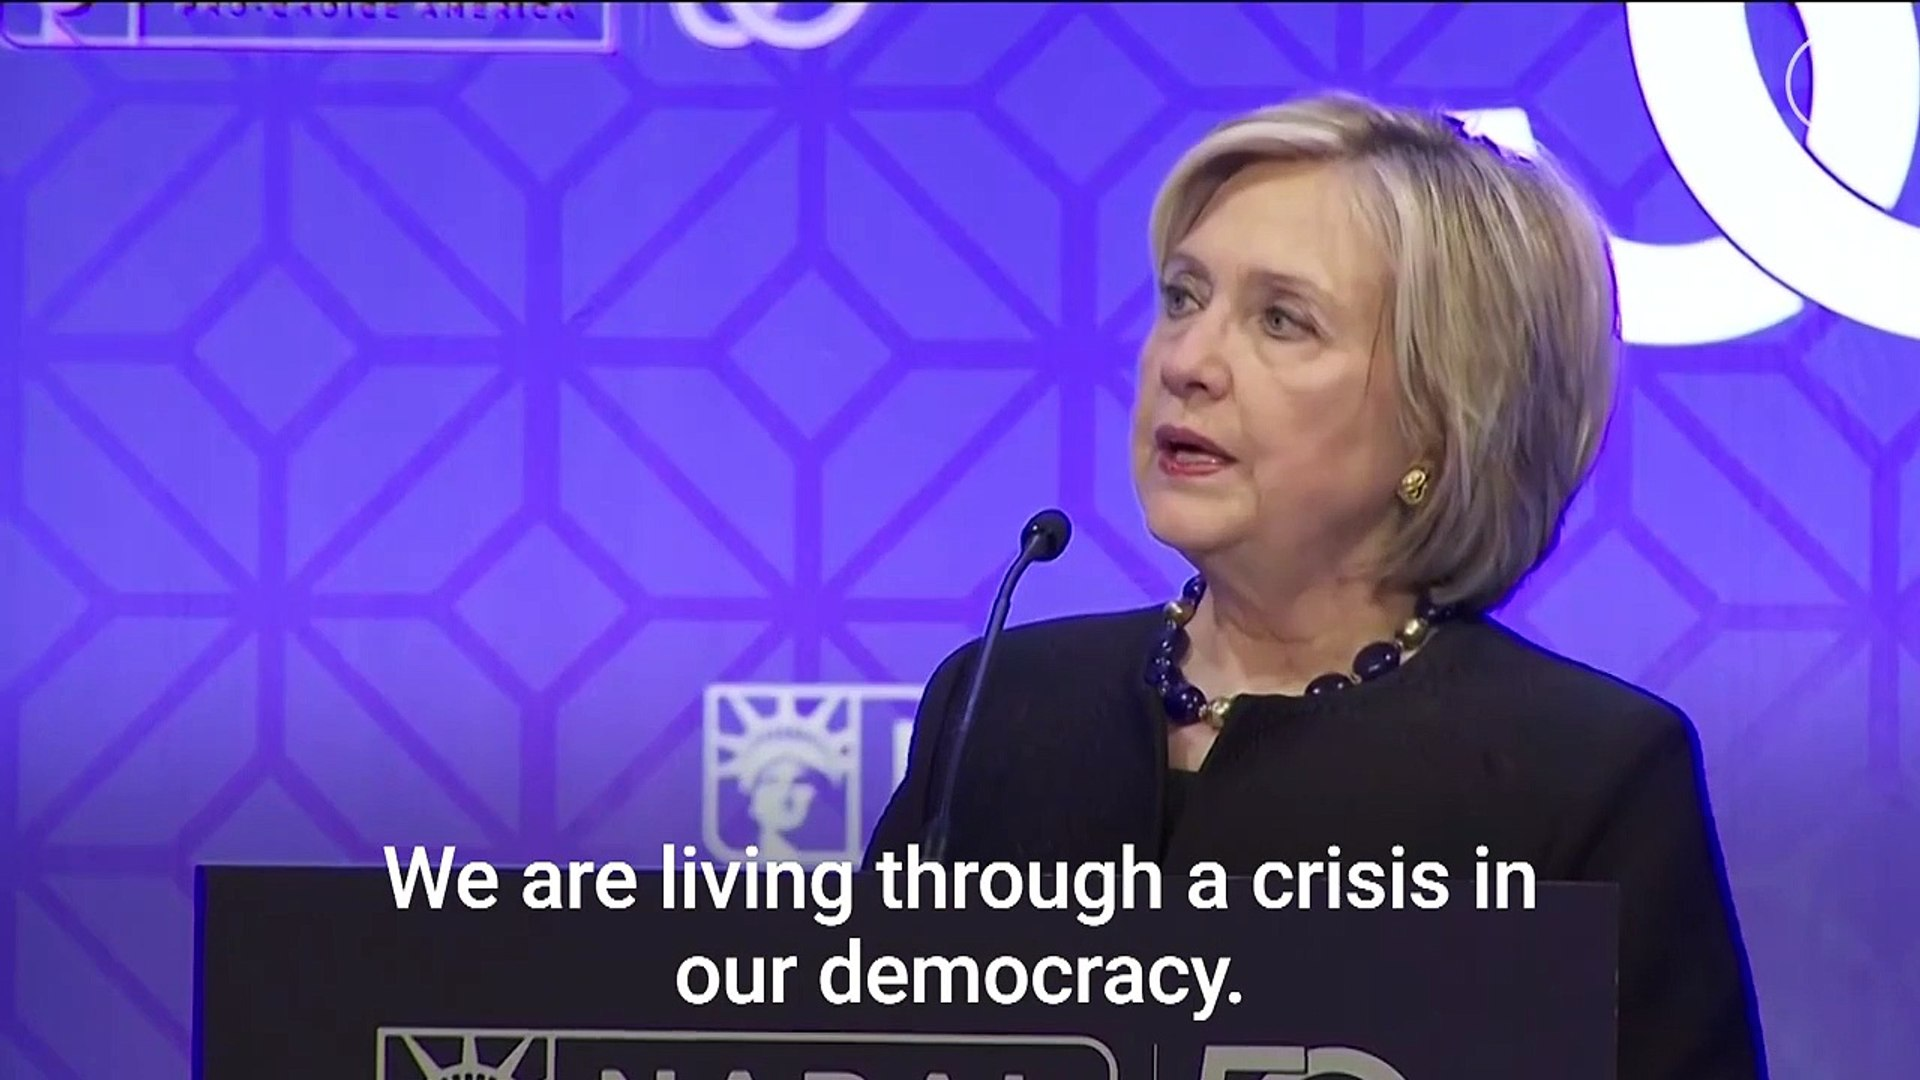 Hillary Clinton Says Trump Poses Danger to America's Democracy